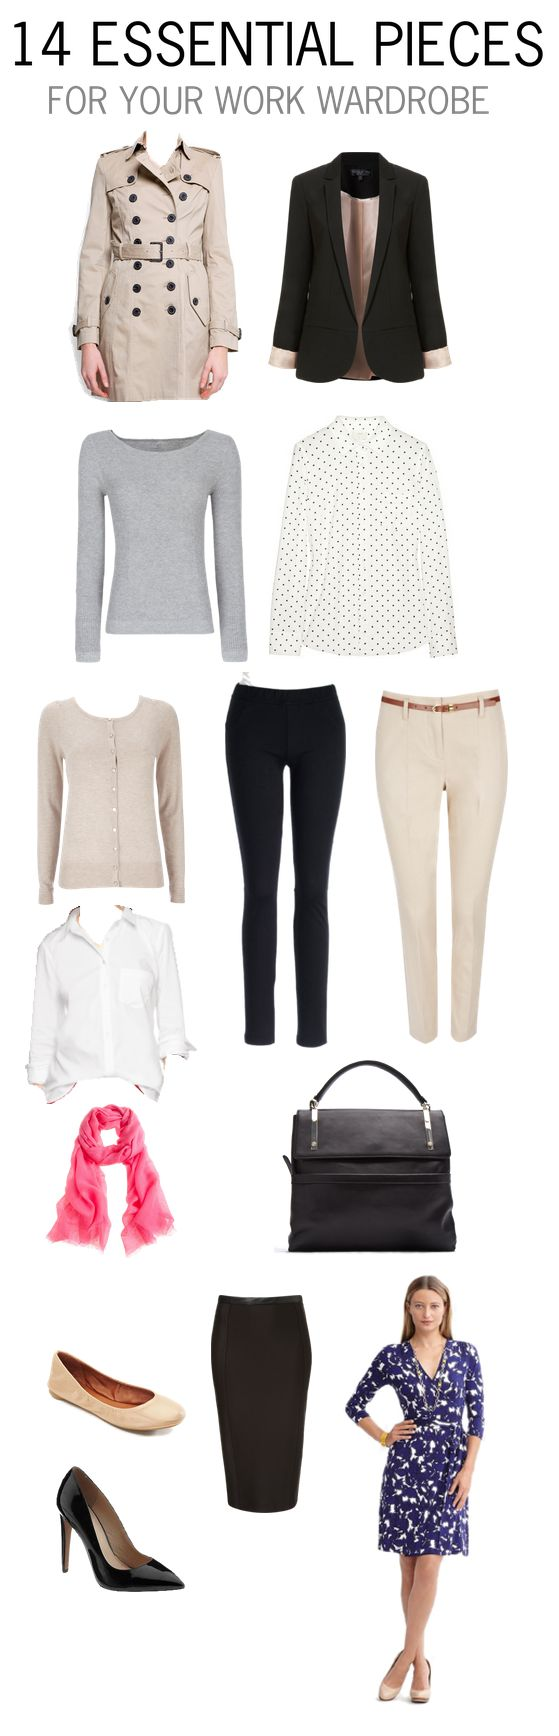 14 Essential Pieces For Your Work Wardrobe